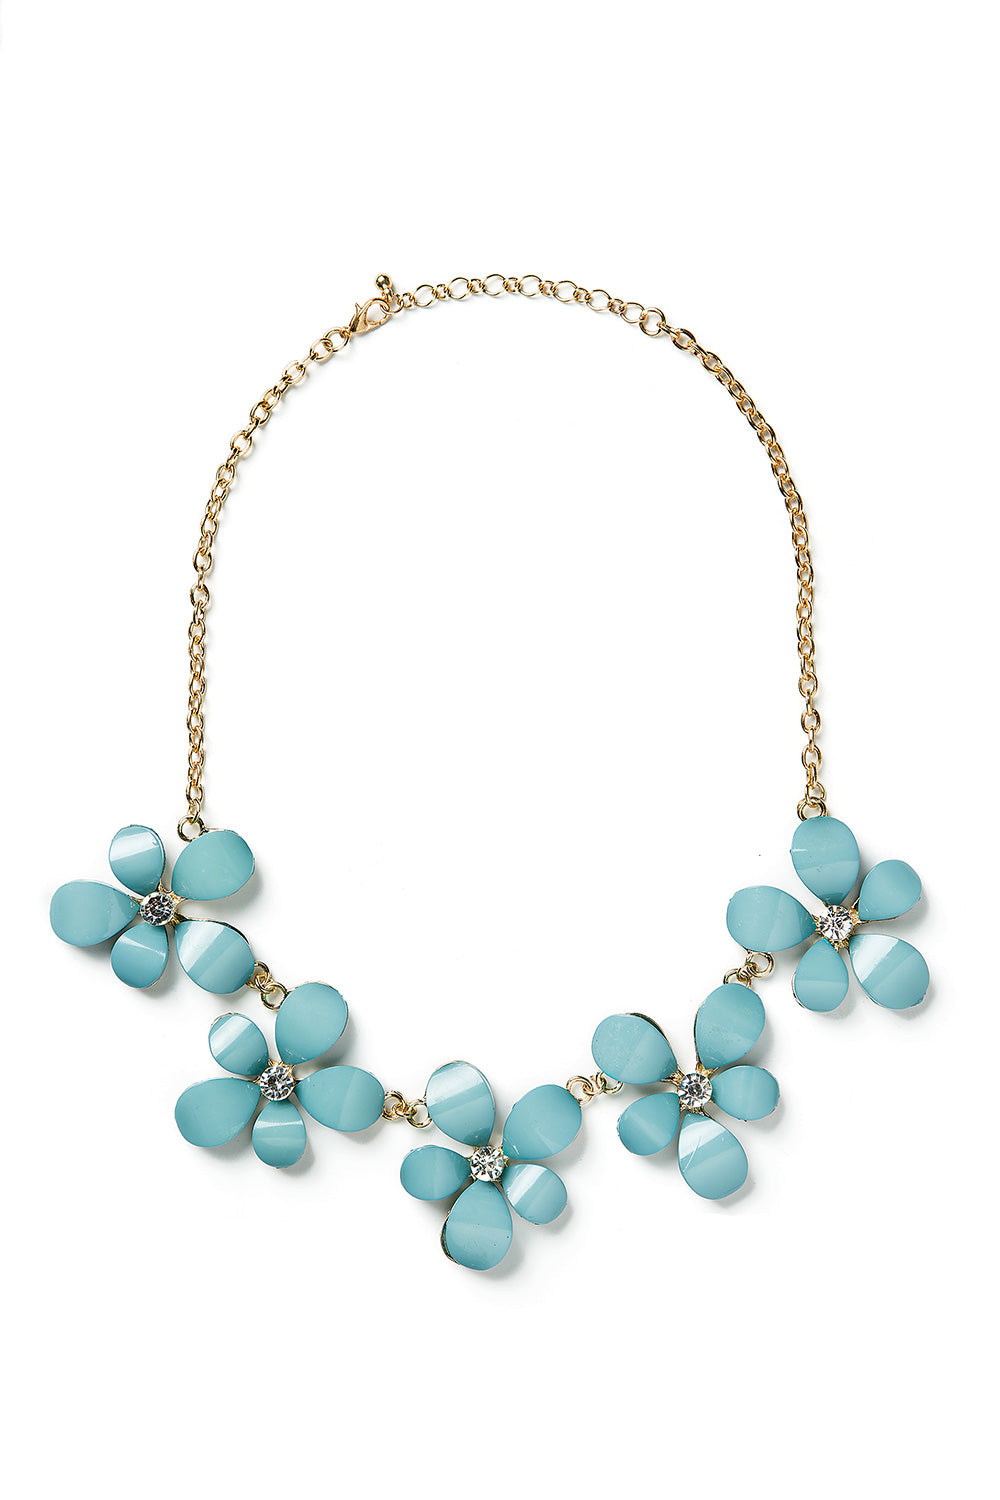 Type 1 Blue Meadow Necklace